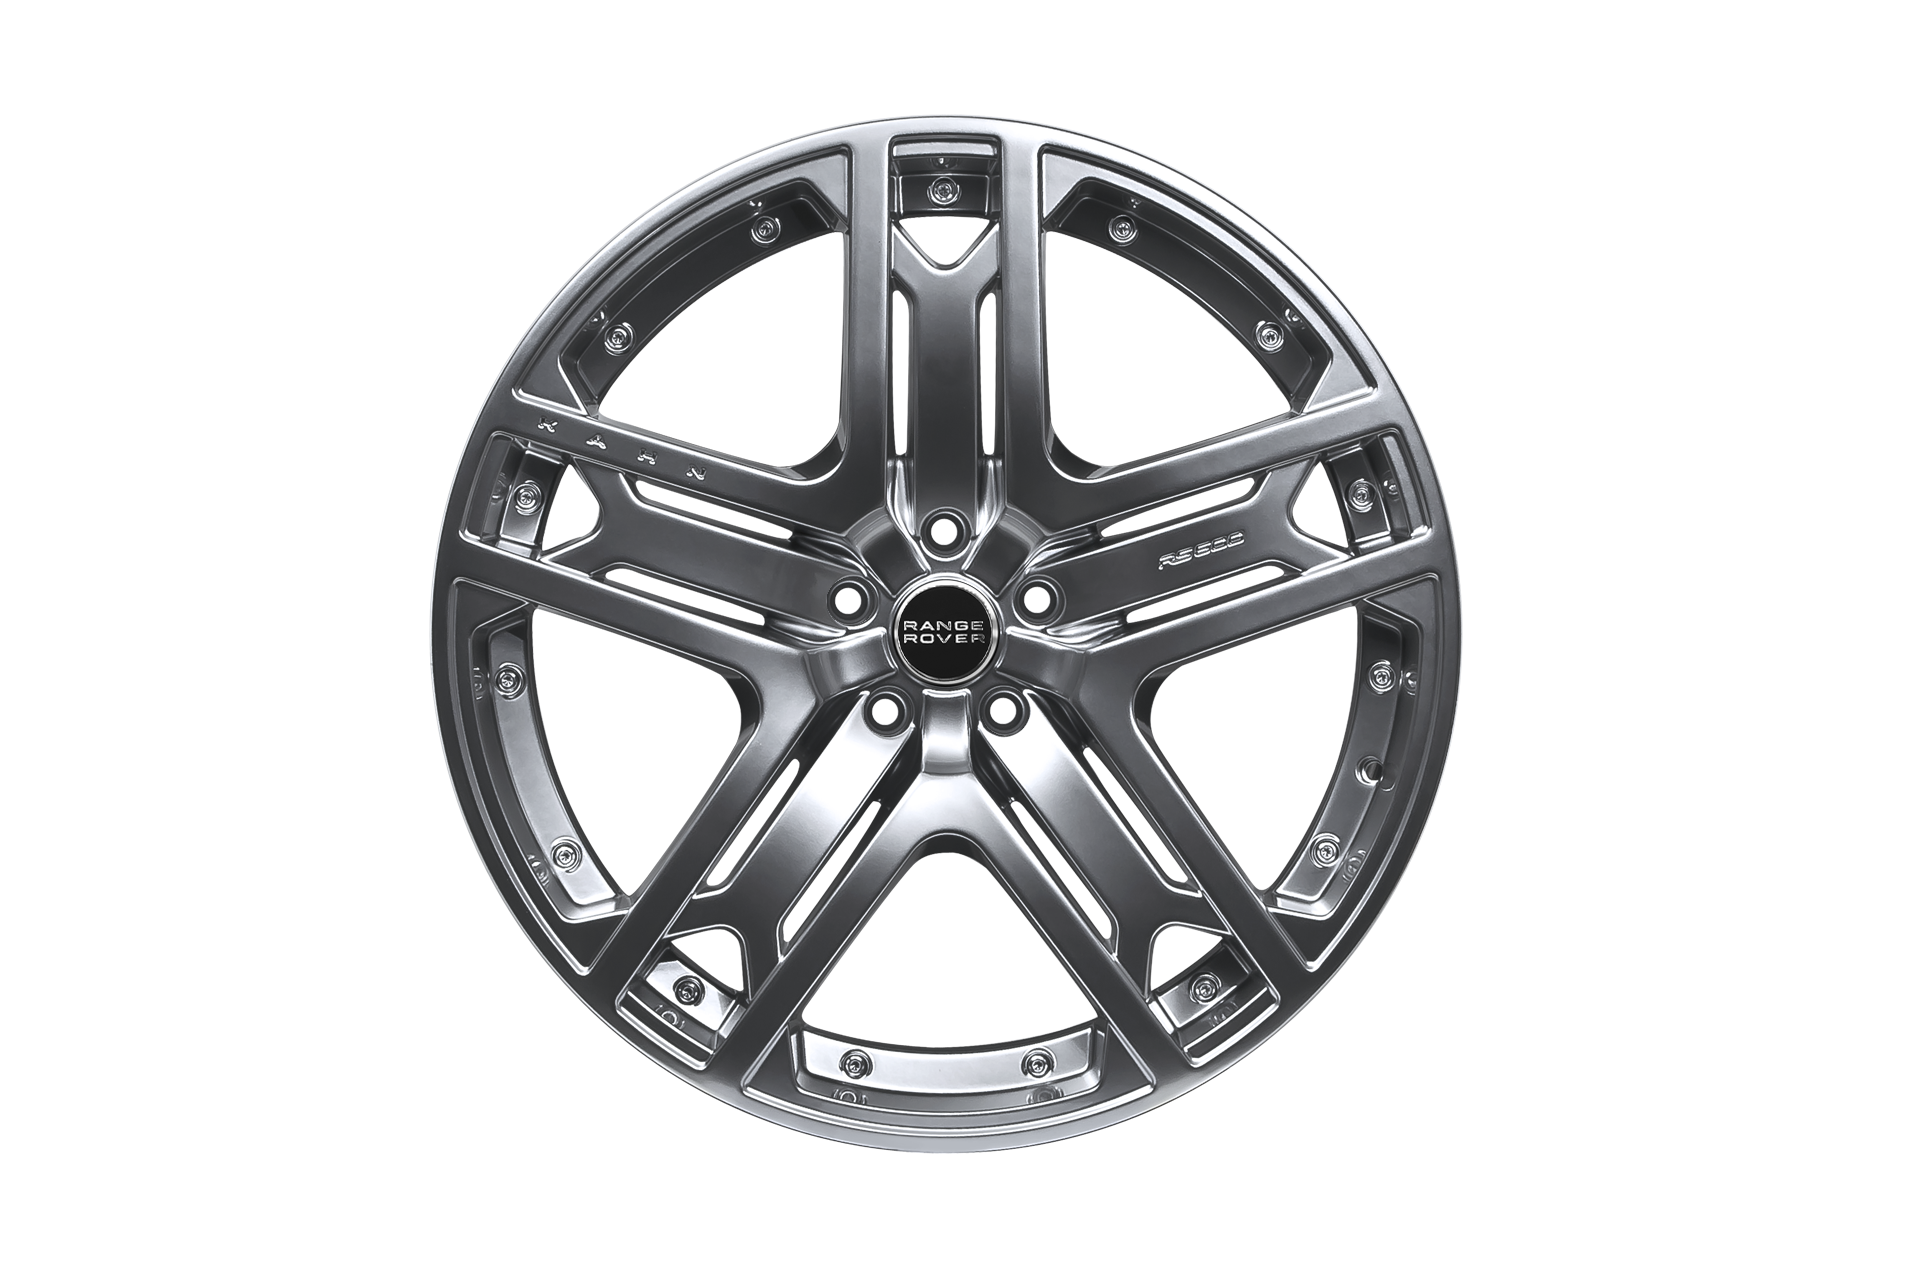 Range Rover (2002-2009) Rs600 Light Alloy Wheels by Kahn - Image 3661